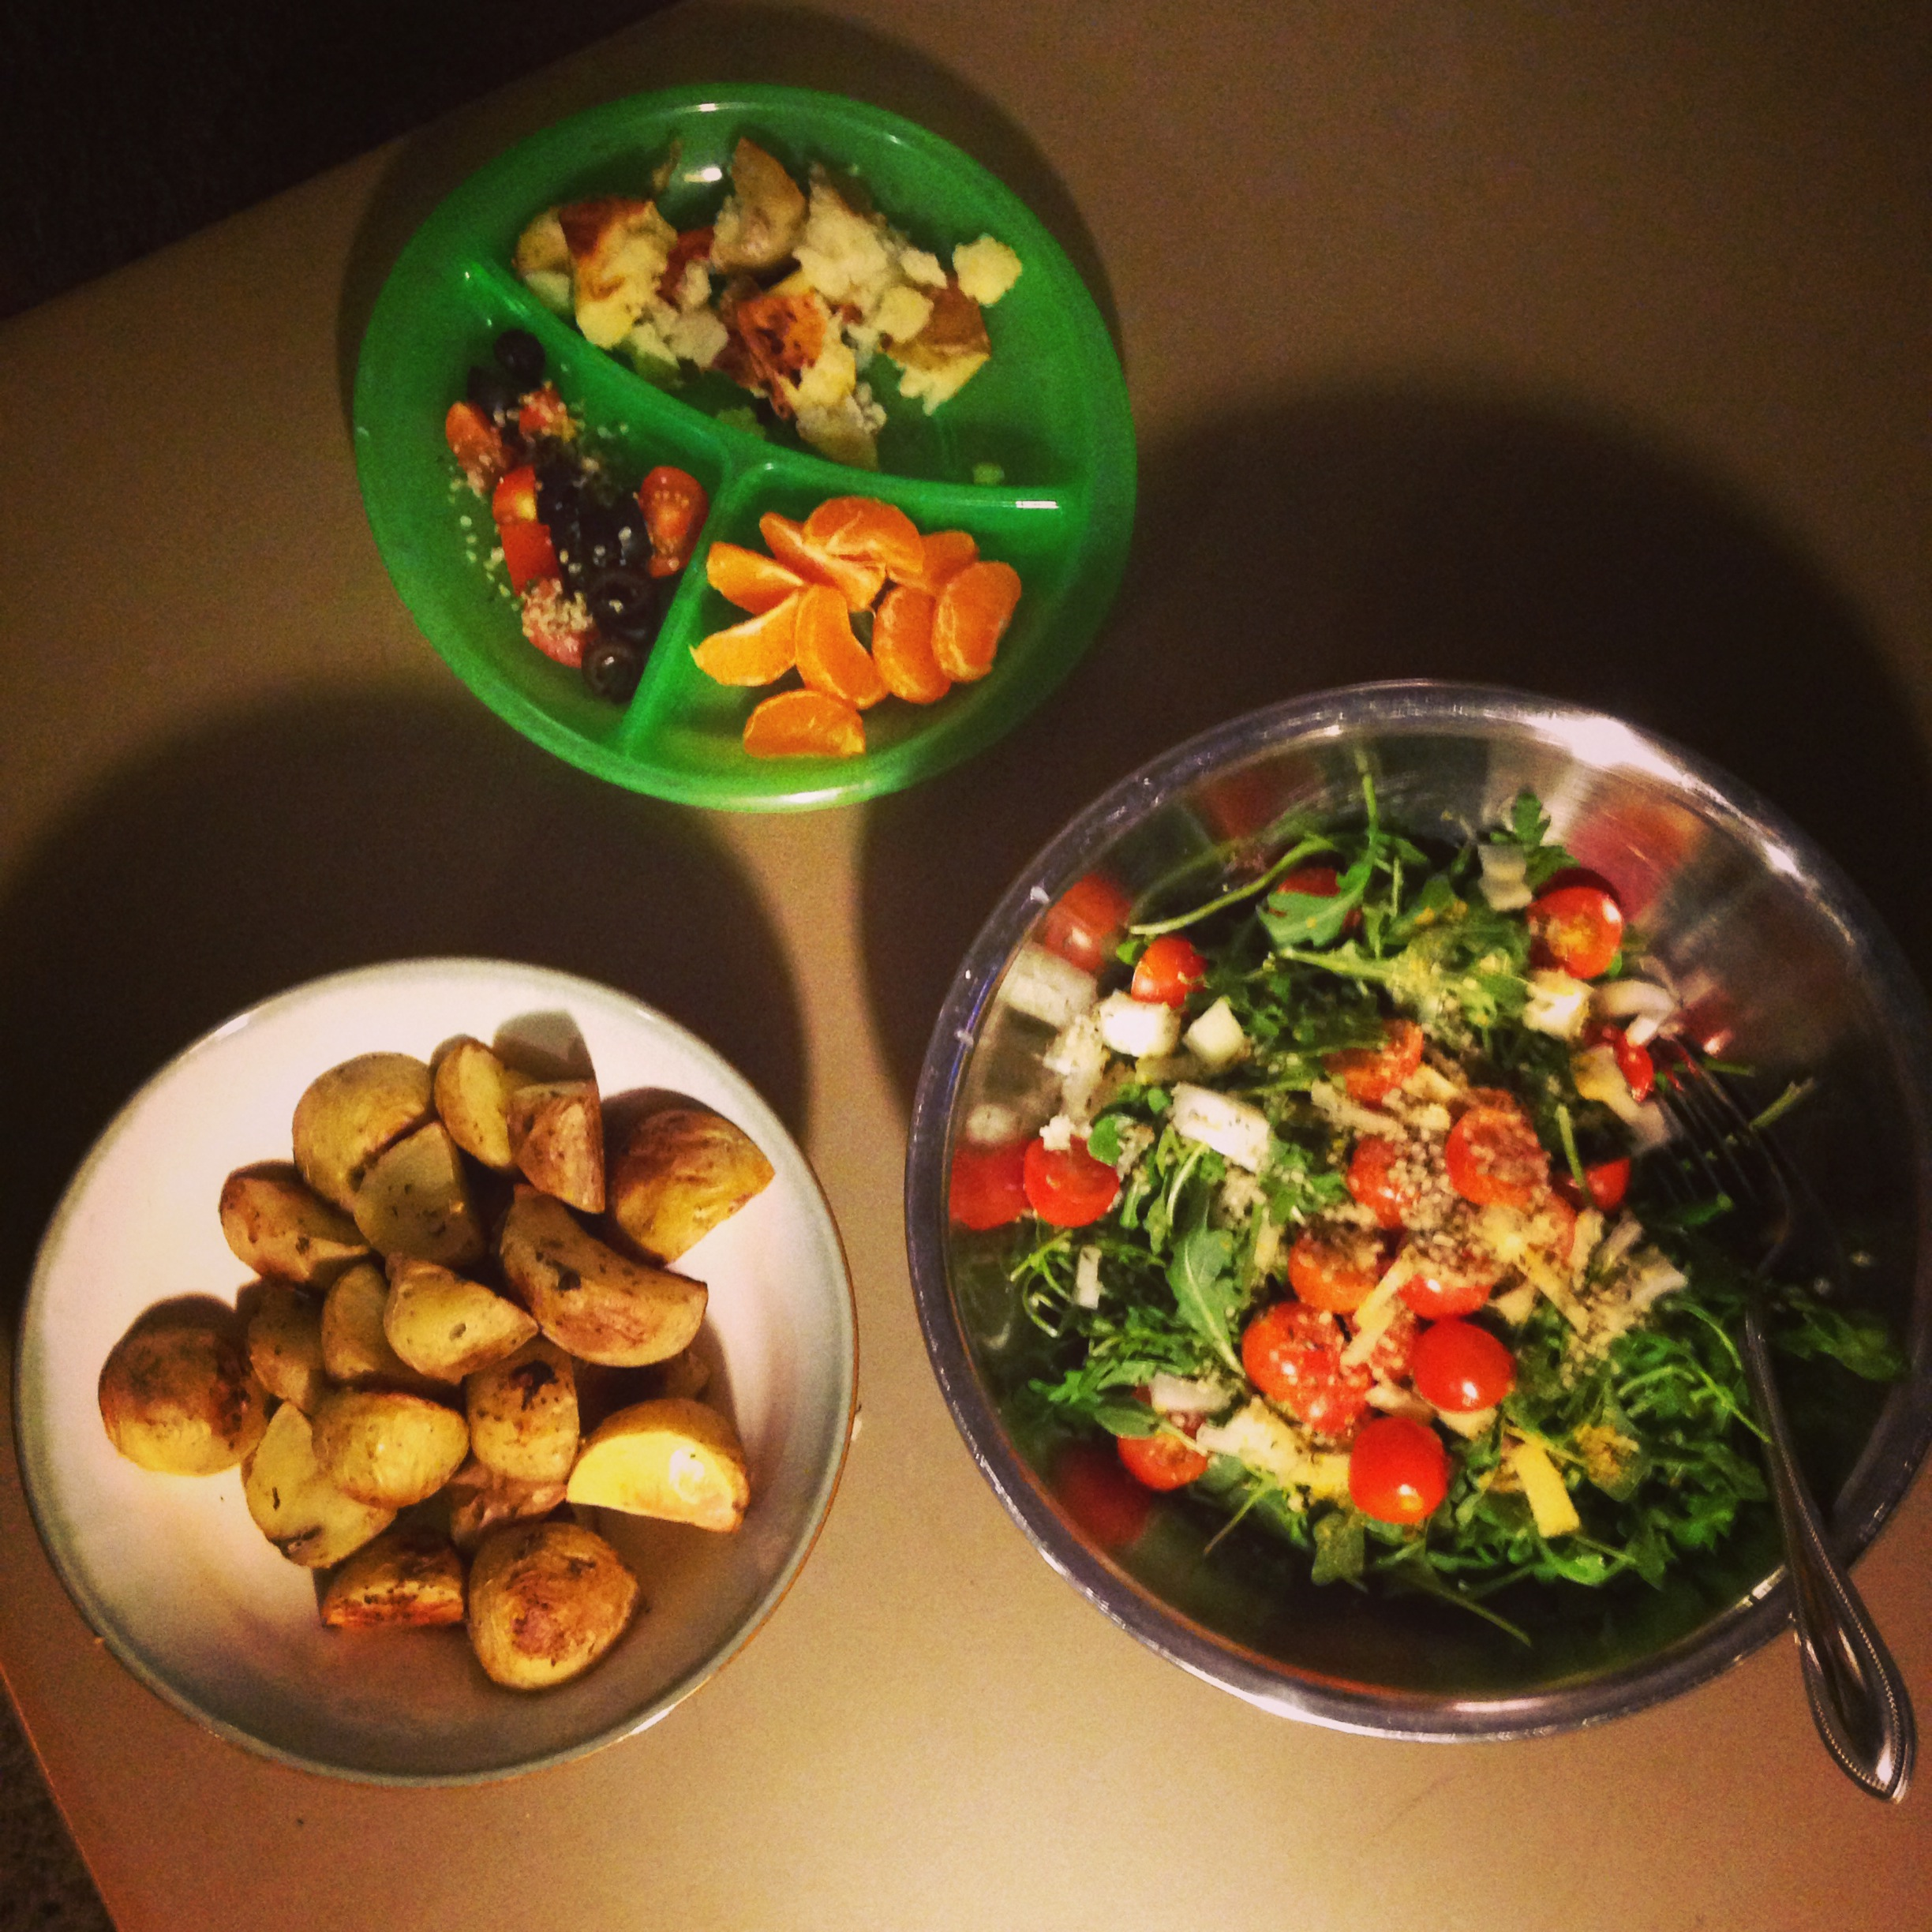 Low fat diet meal planner photo 8